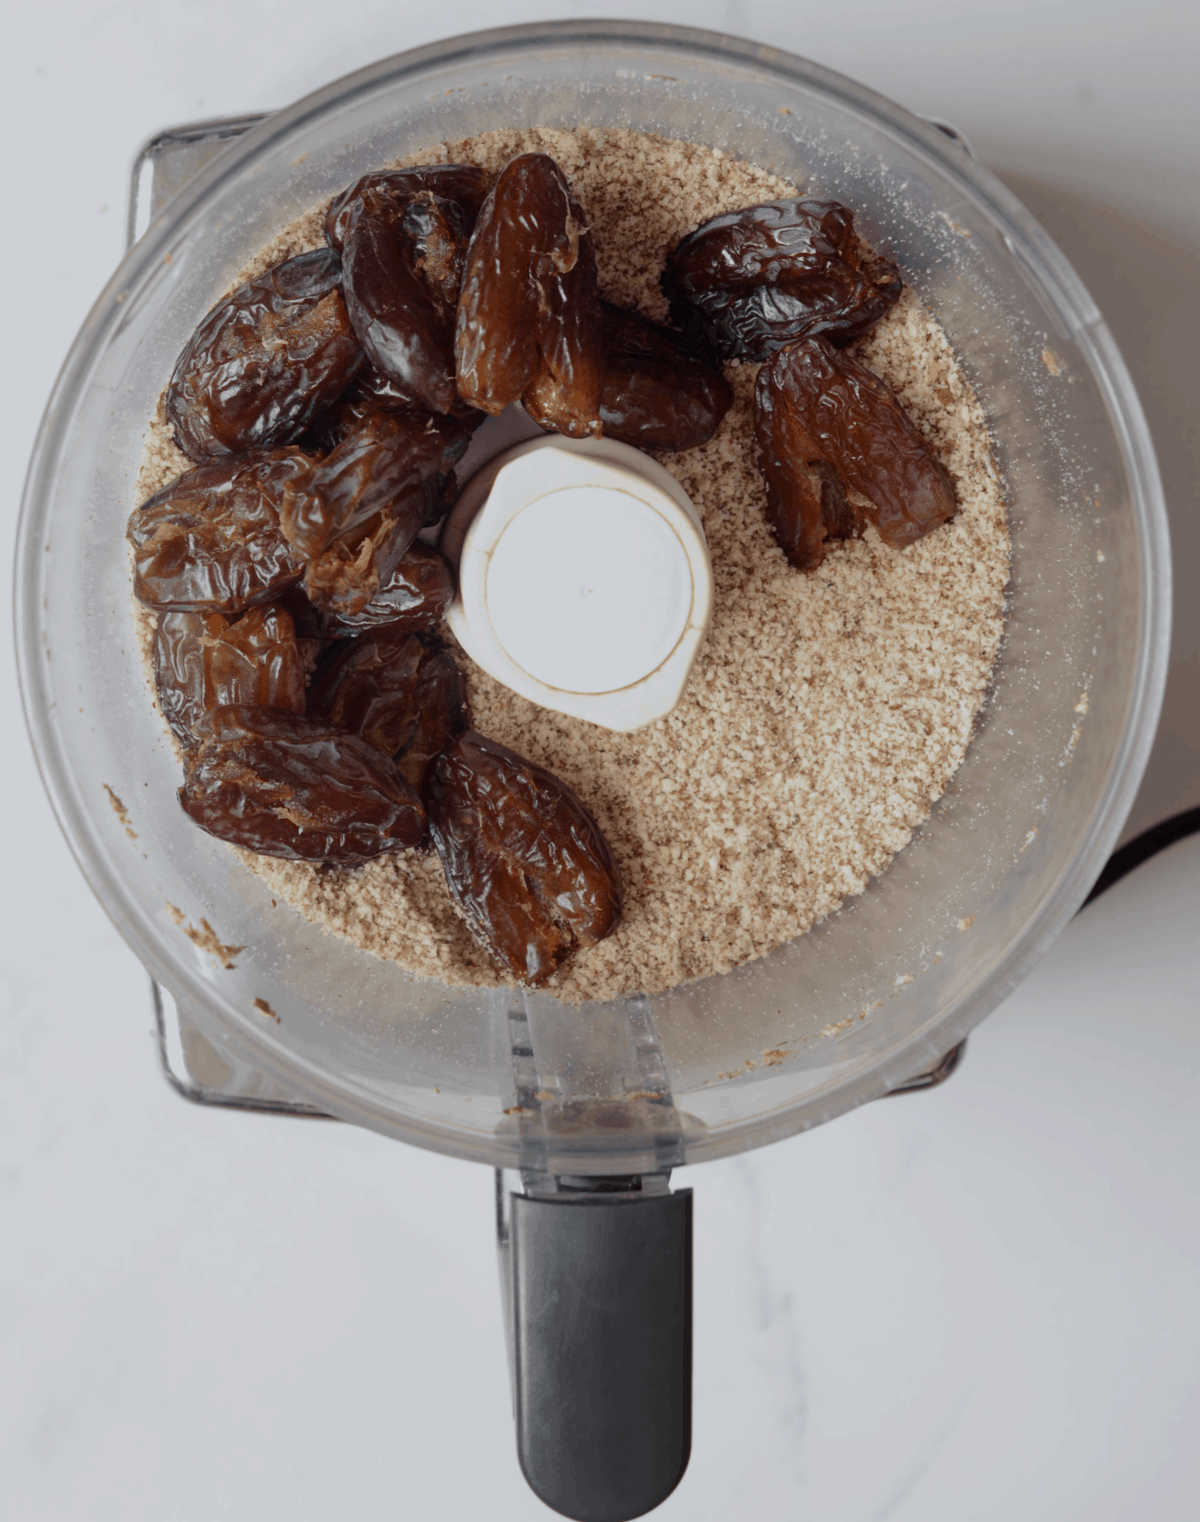 Blending nuts and dates in a blender